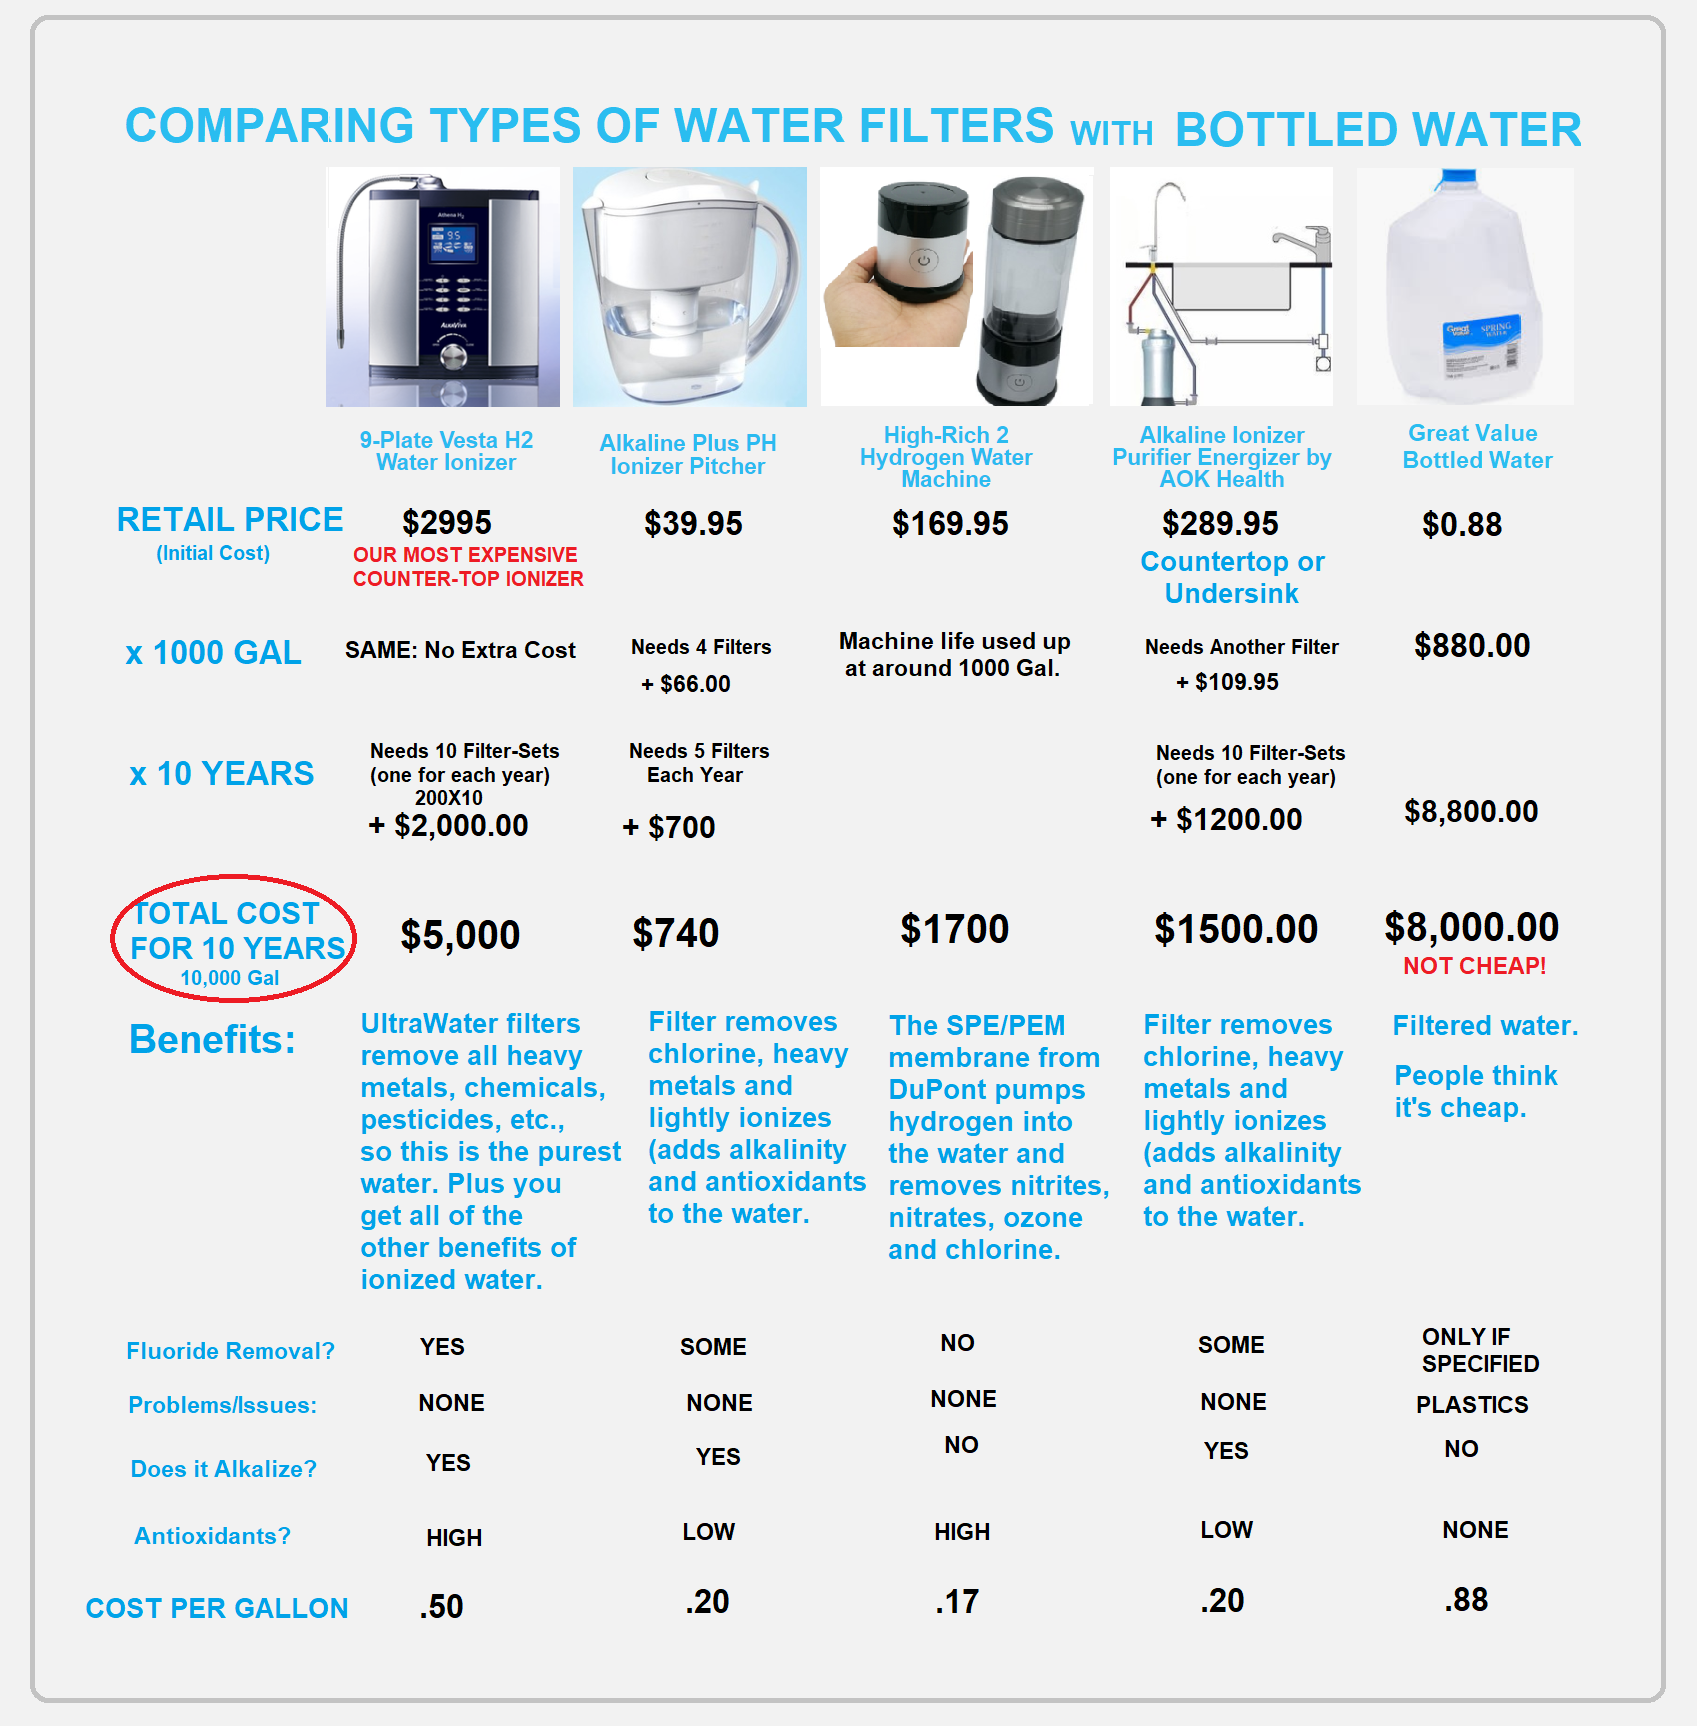 comparing-water-filters-vs-bottled-water.png